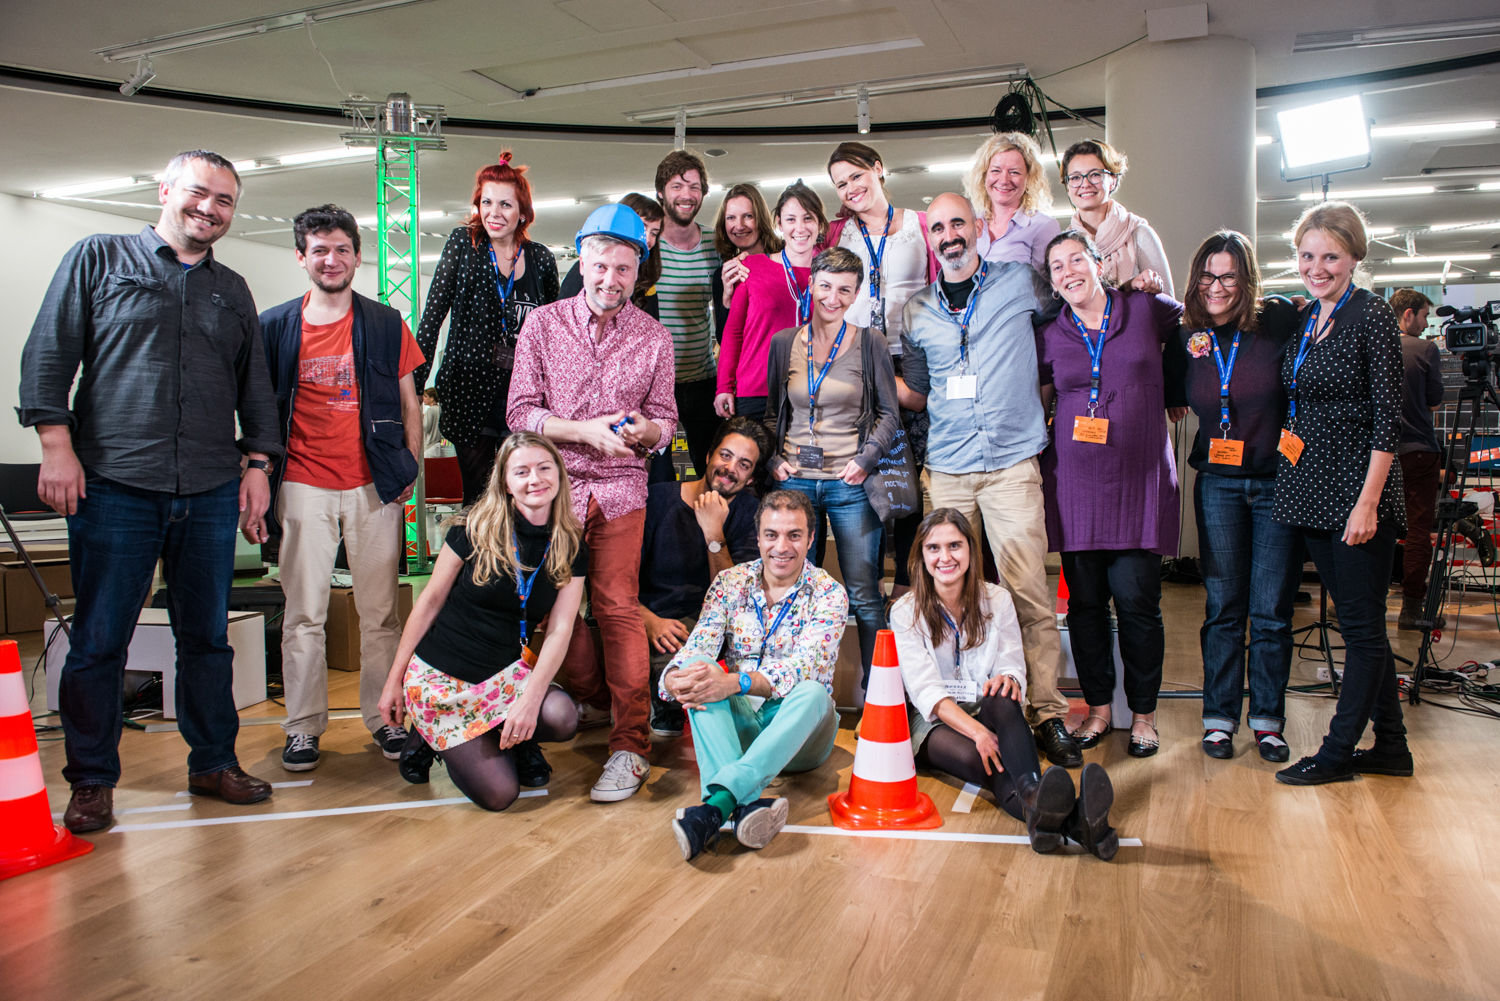 Members of the Connected Action for the Commons network at the first Idea Camp in Marseille, 2014. Photo by Cedric Moulard.